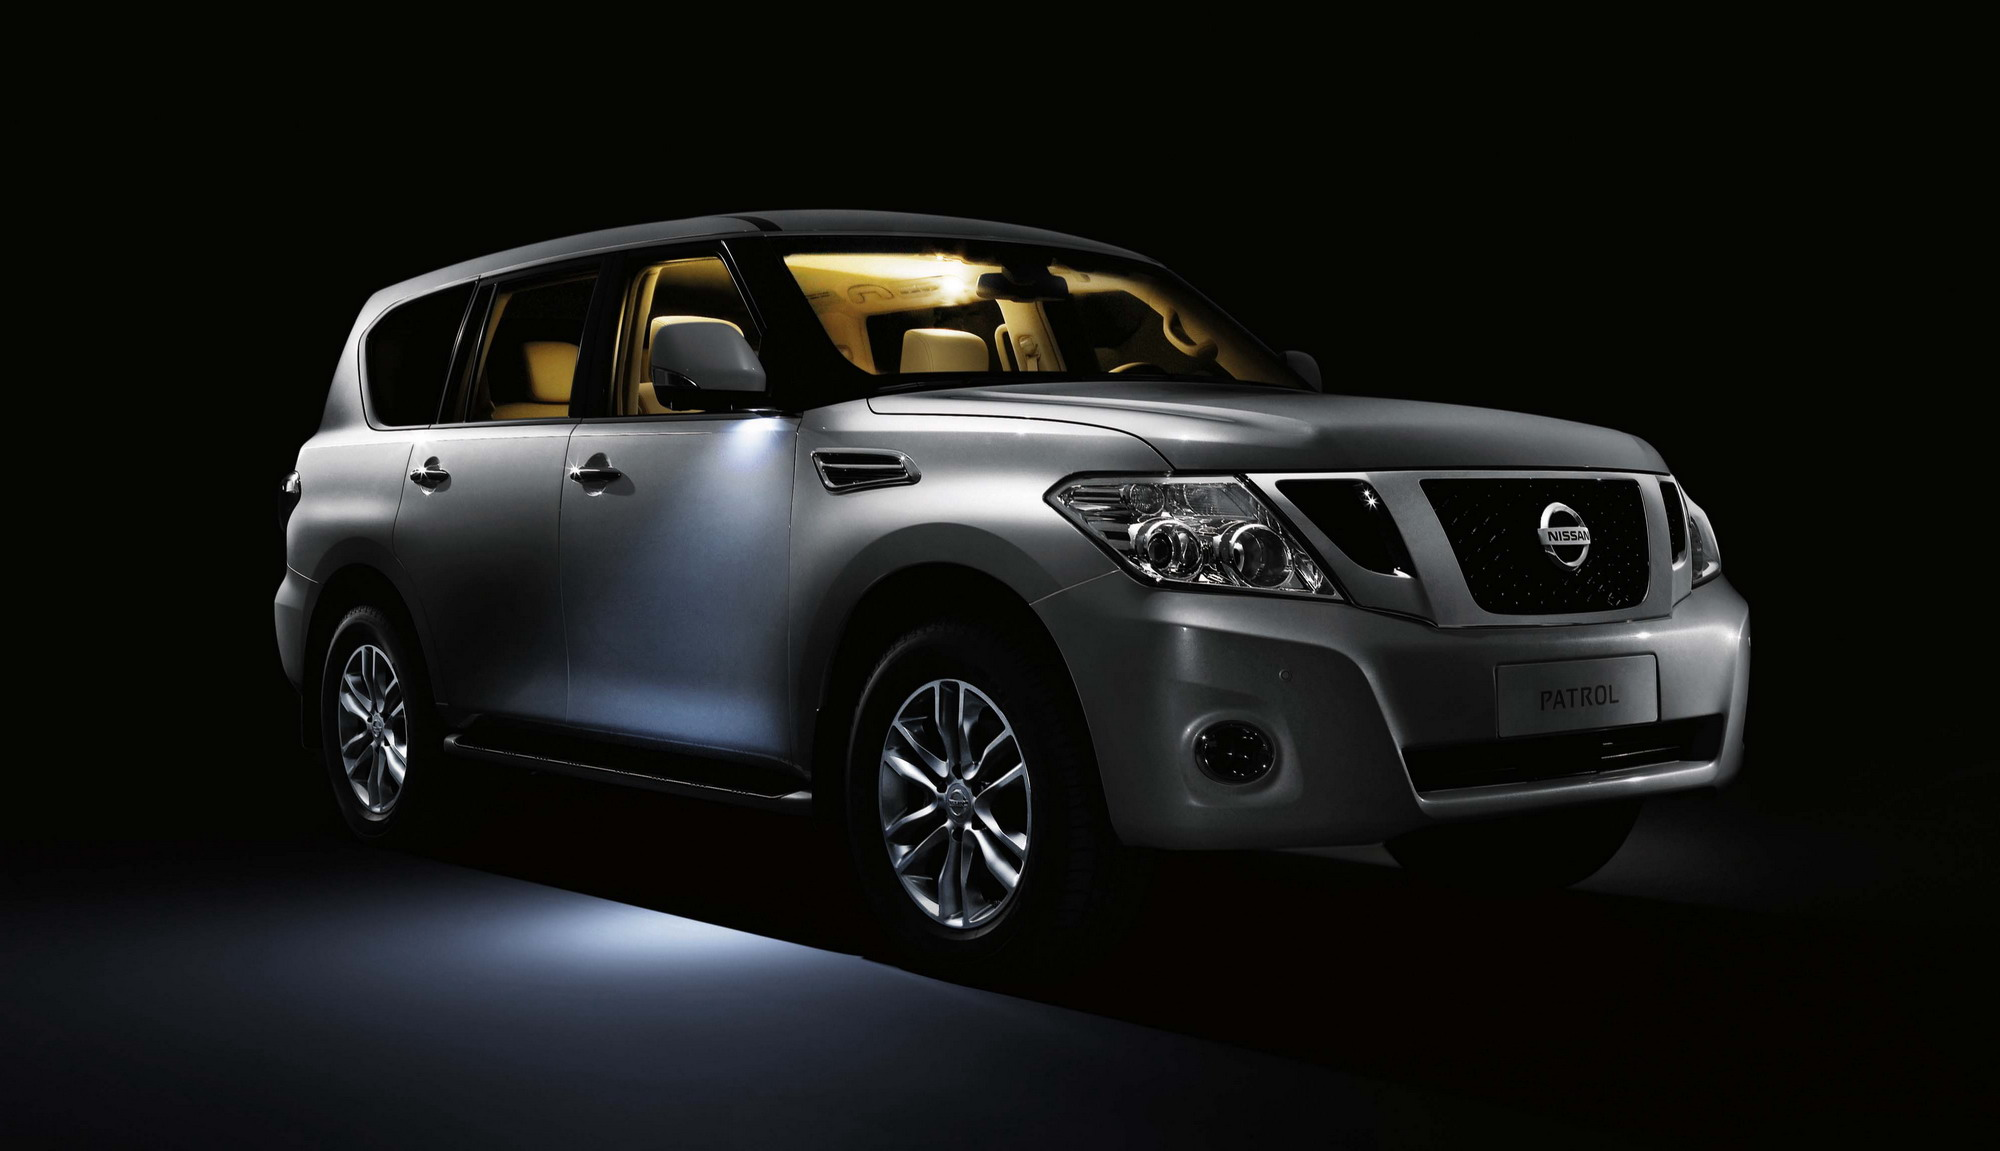 Nissan Patrol Latest News Reviews Specifications Prices Photos And Videos Top Speed